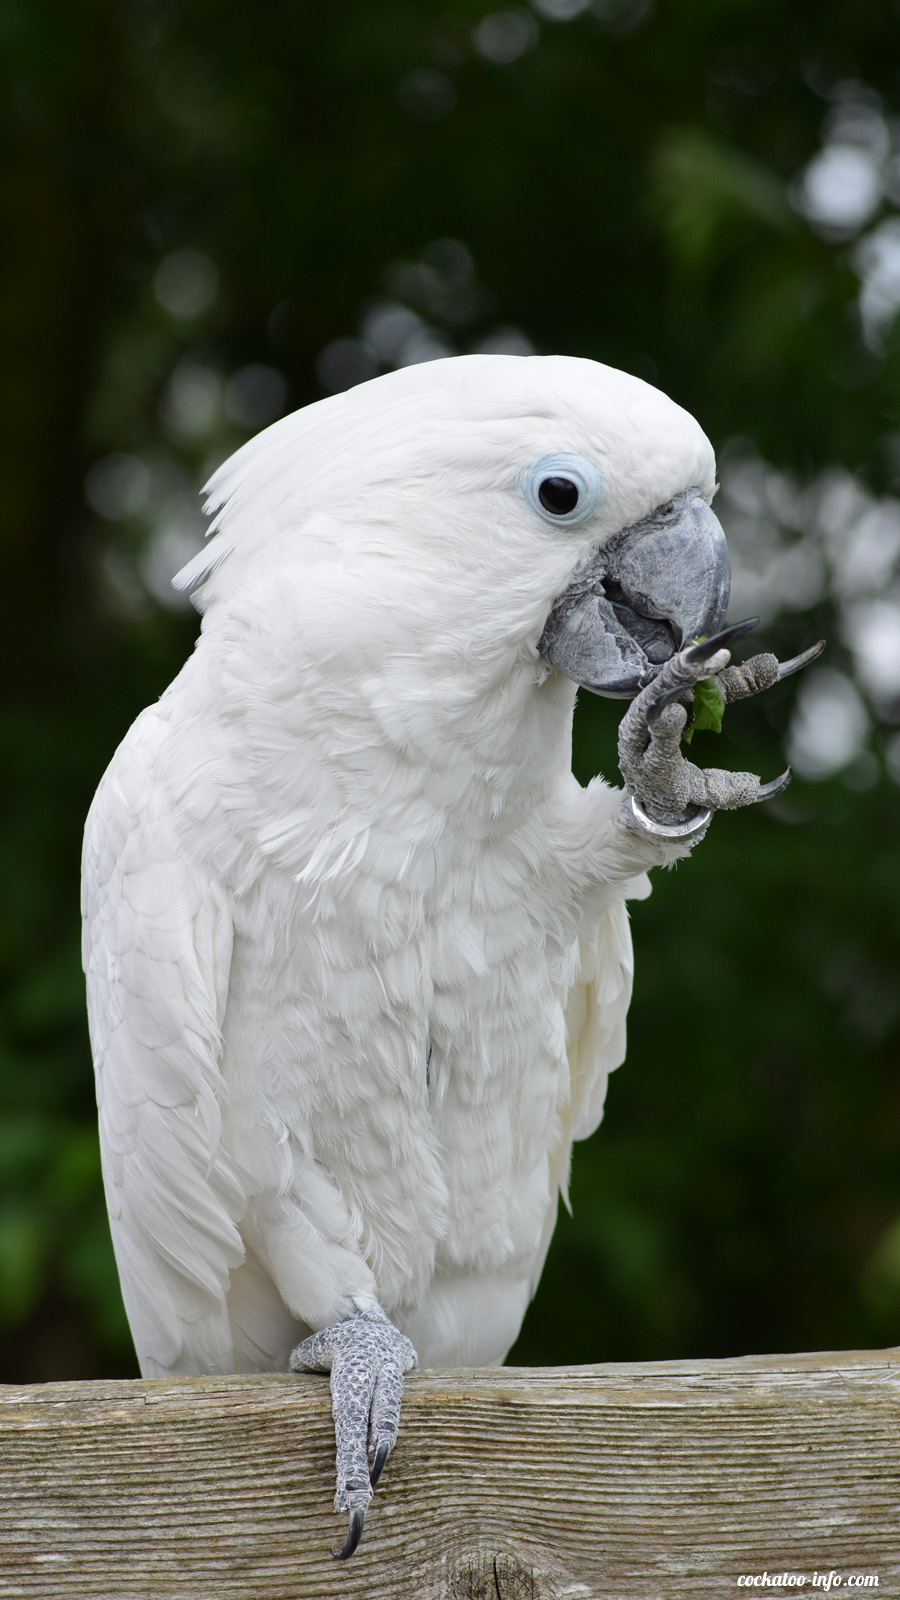 Fresh food for cockatoos | Cockatoo-info com